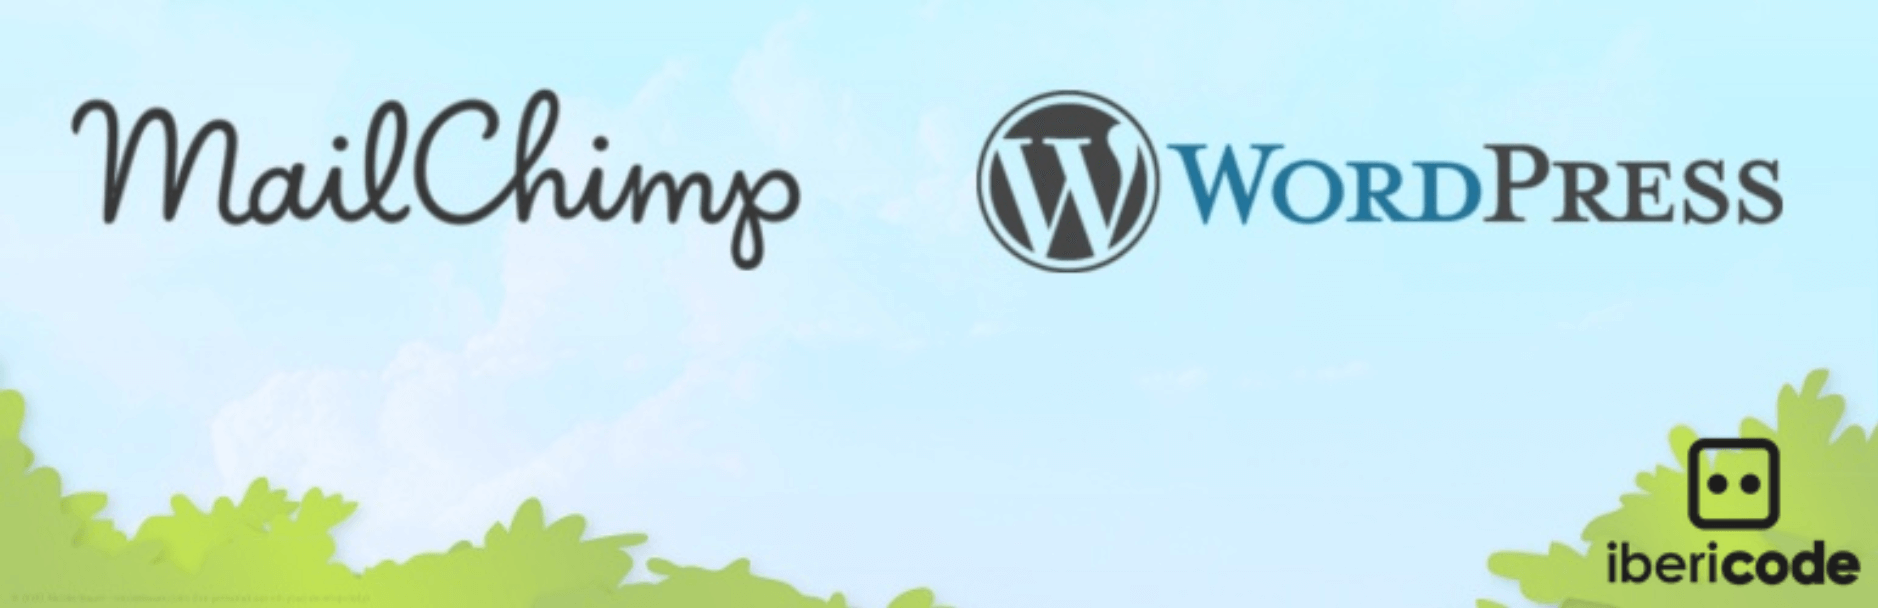 Le plugin MailChimp pour WordPress.